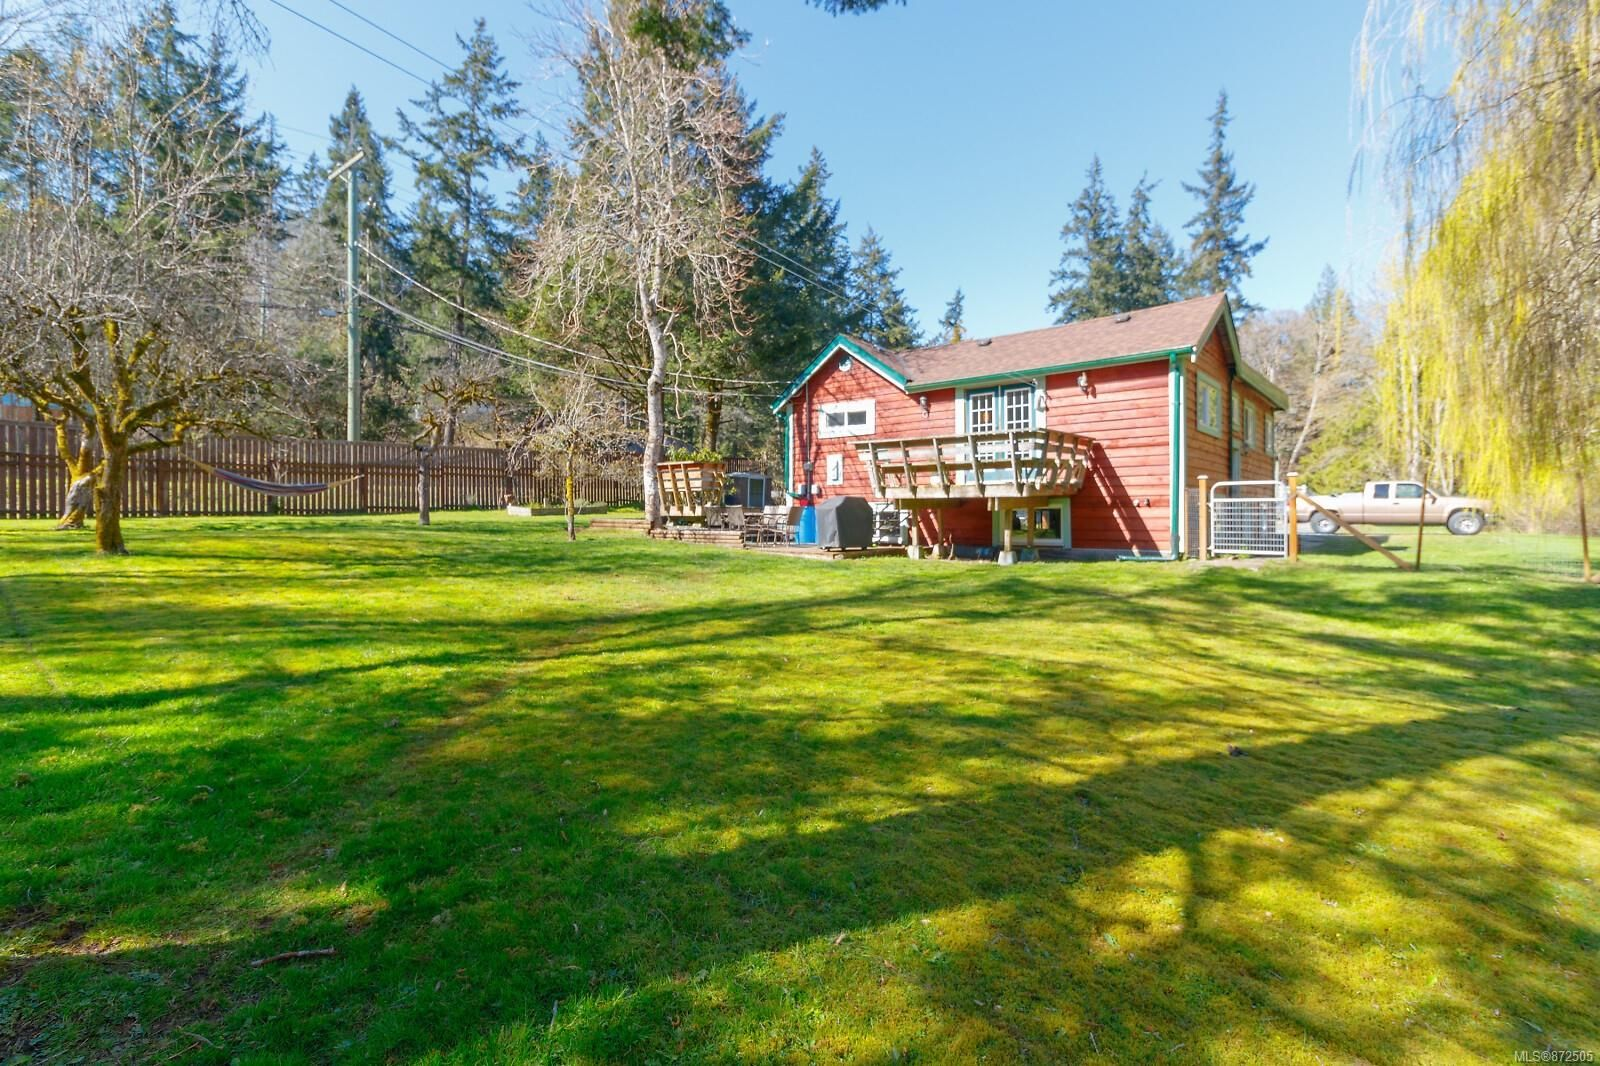 Main Photo: 4025 Happy Valley Rd in : Me Metchosin House for sale (Metchosin)  : MLS®# 872505